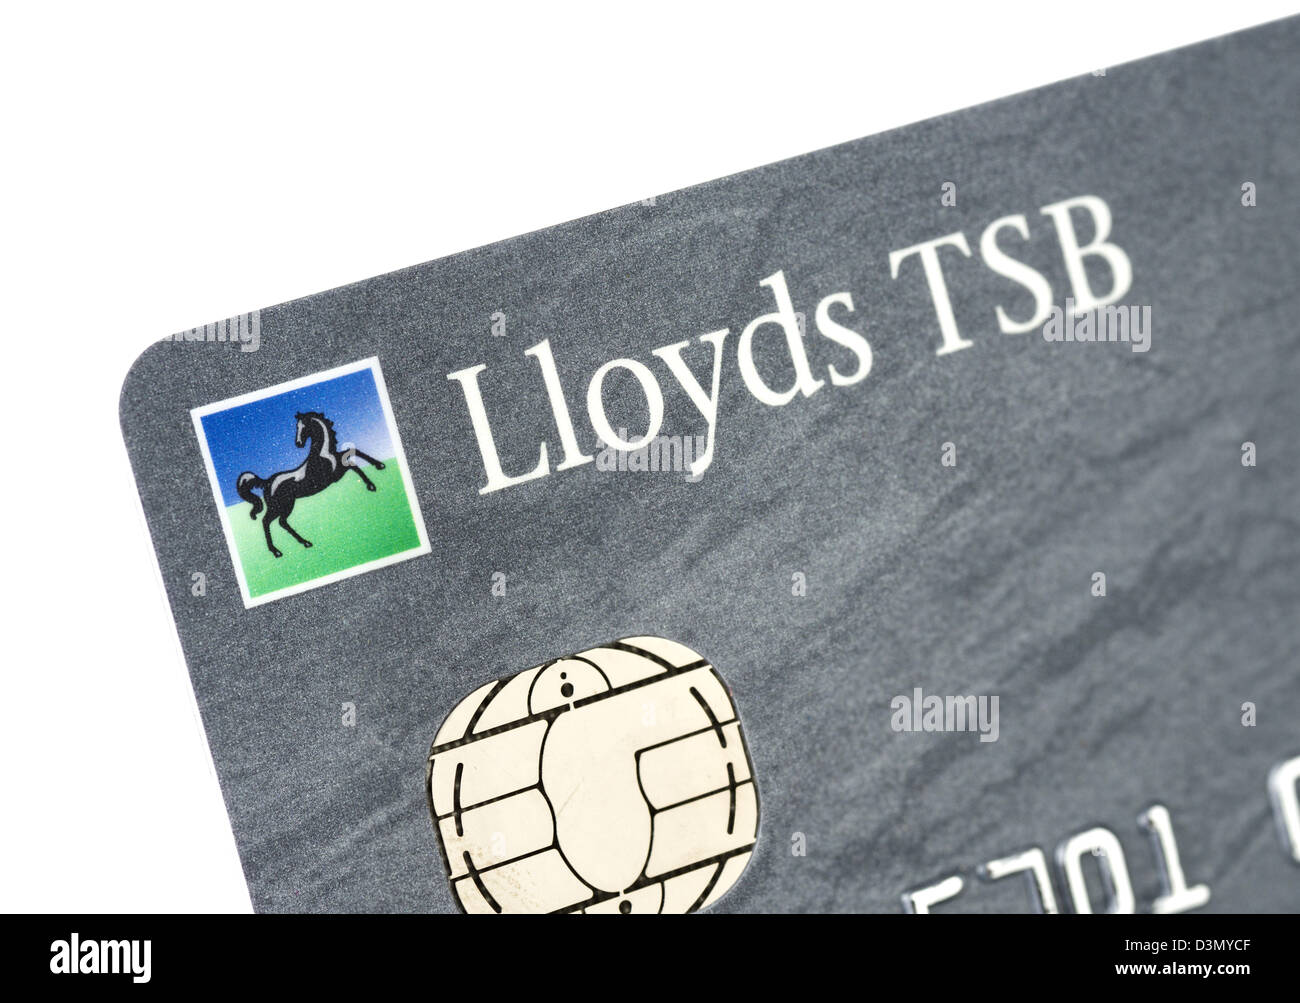 Lloyds bank card stock photos lloyds bank card stock images alamy lloyds tsb bank credit card issued in the uk stock image reheart Images